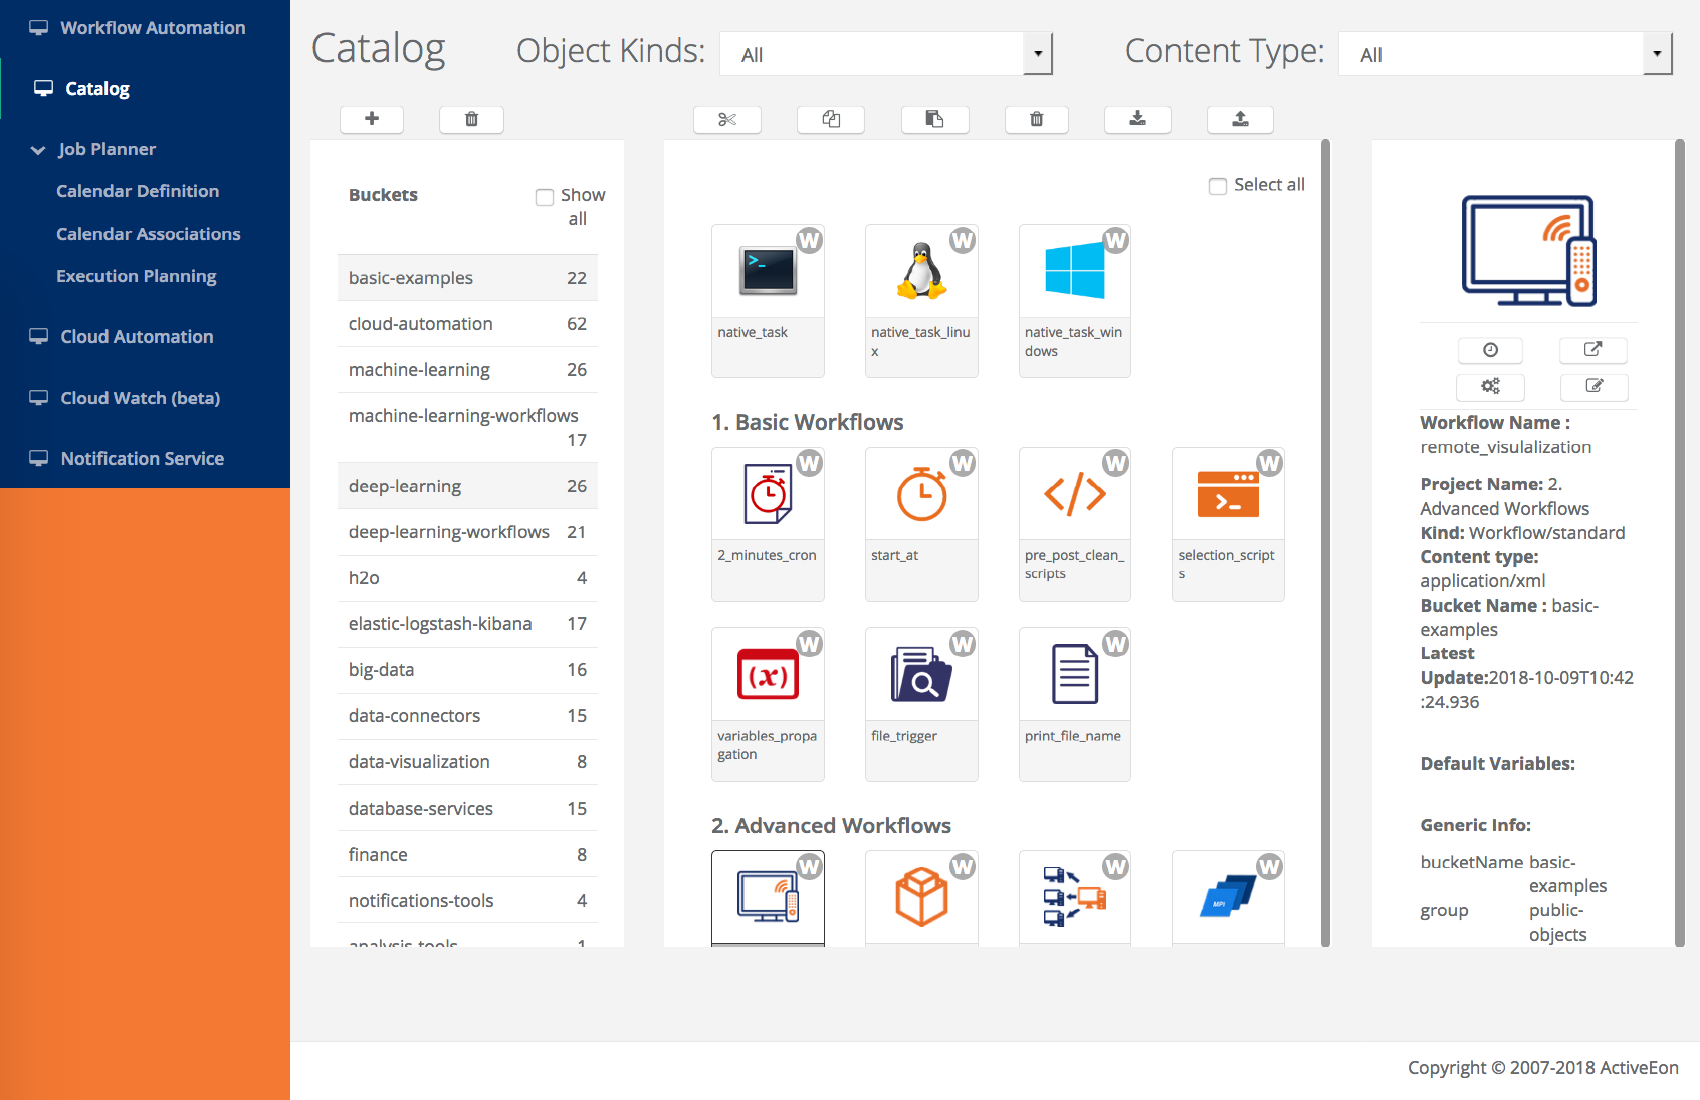 images/product-screenshots/proactive-workflow-catalog.png